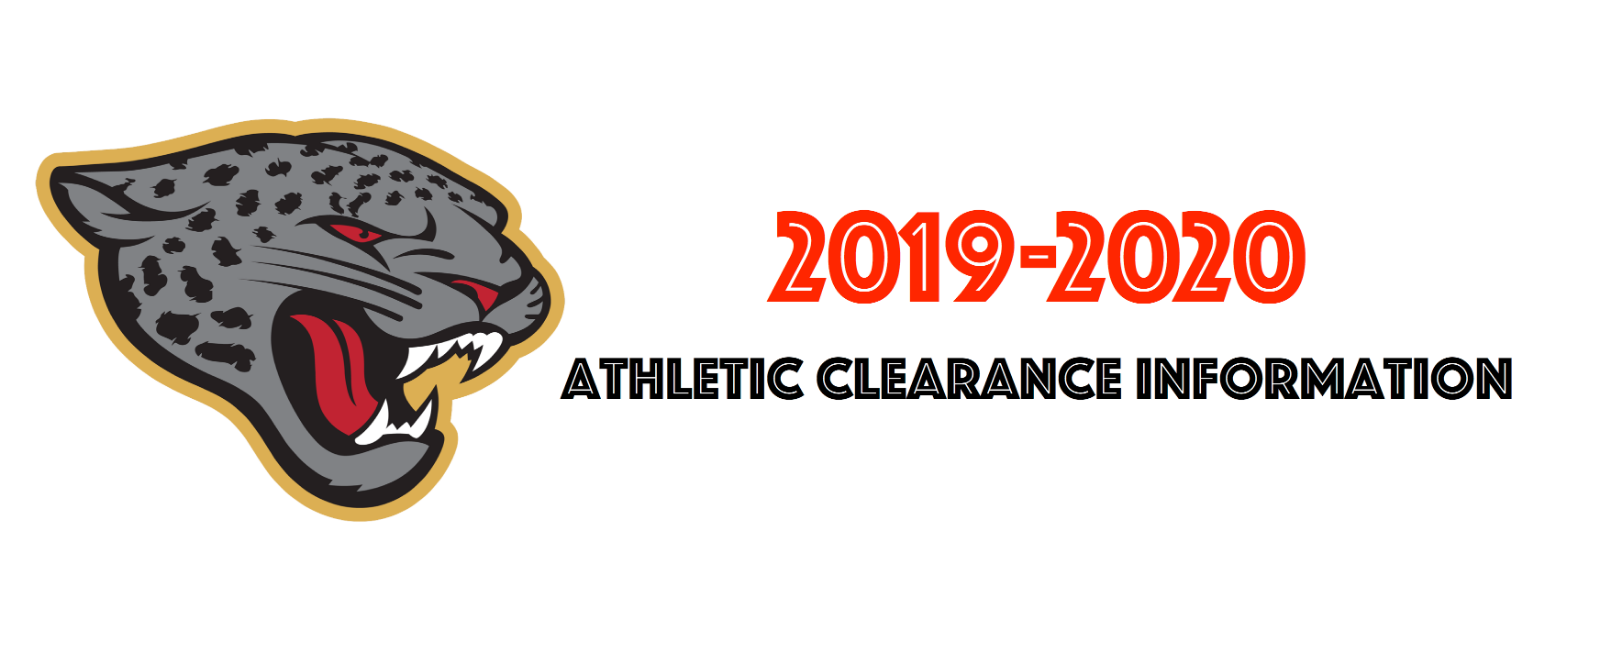 2019-2020 Athletic Clearance Information